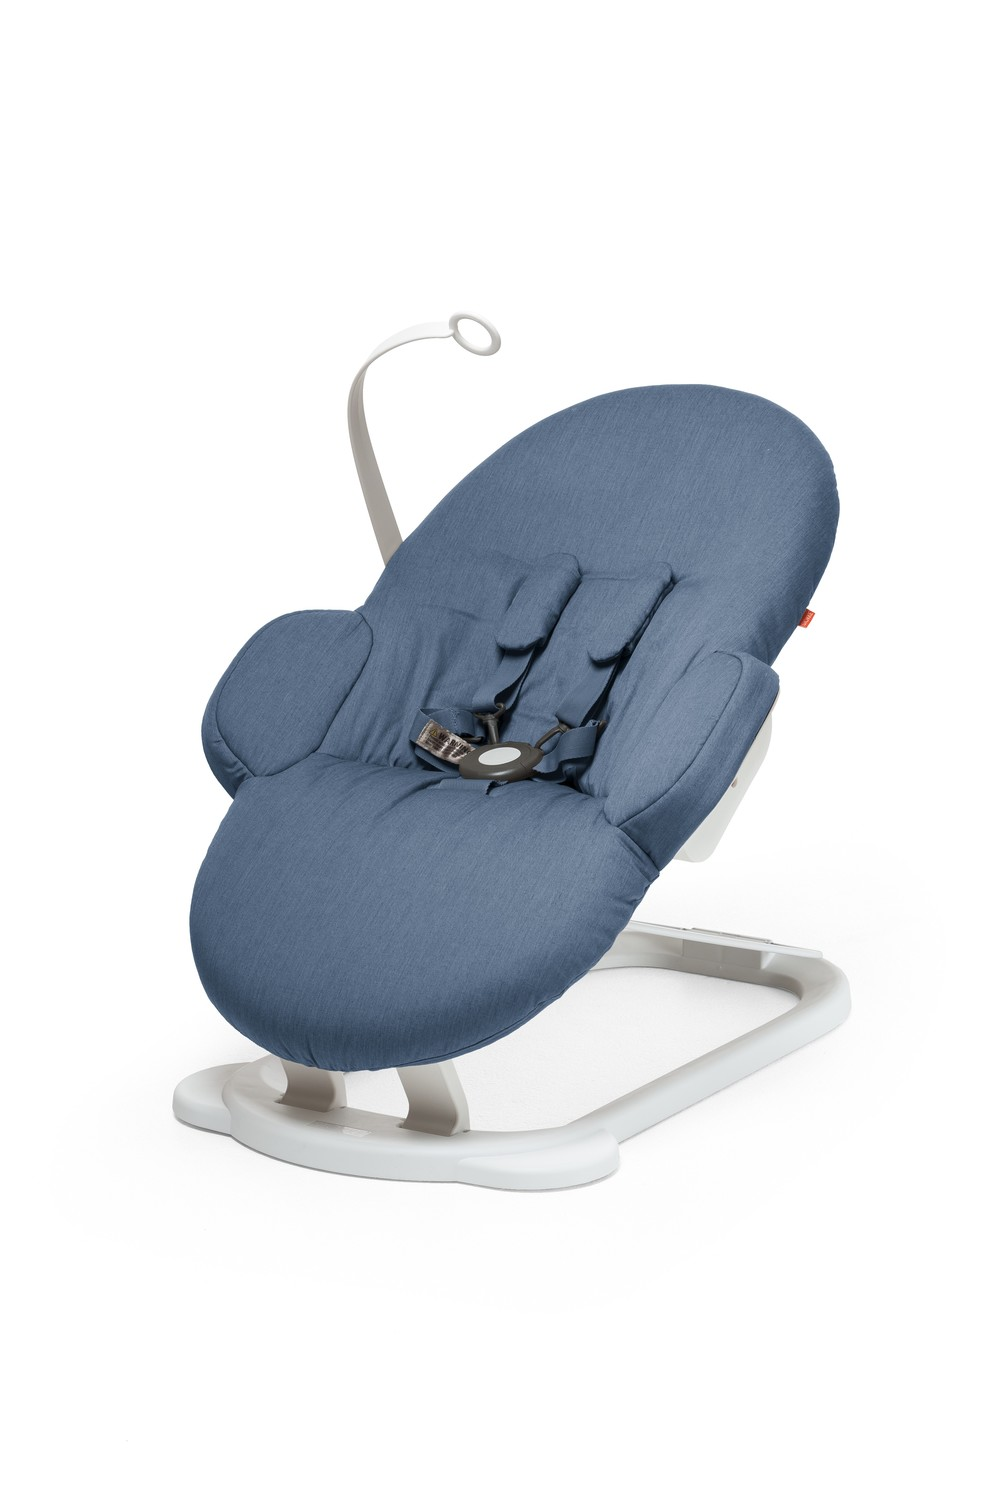 Stokke Steps Bouncer 130815-8I0433 Toy Blue.jpg